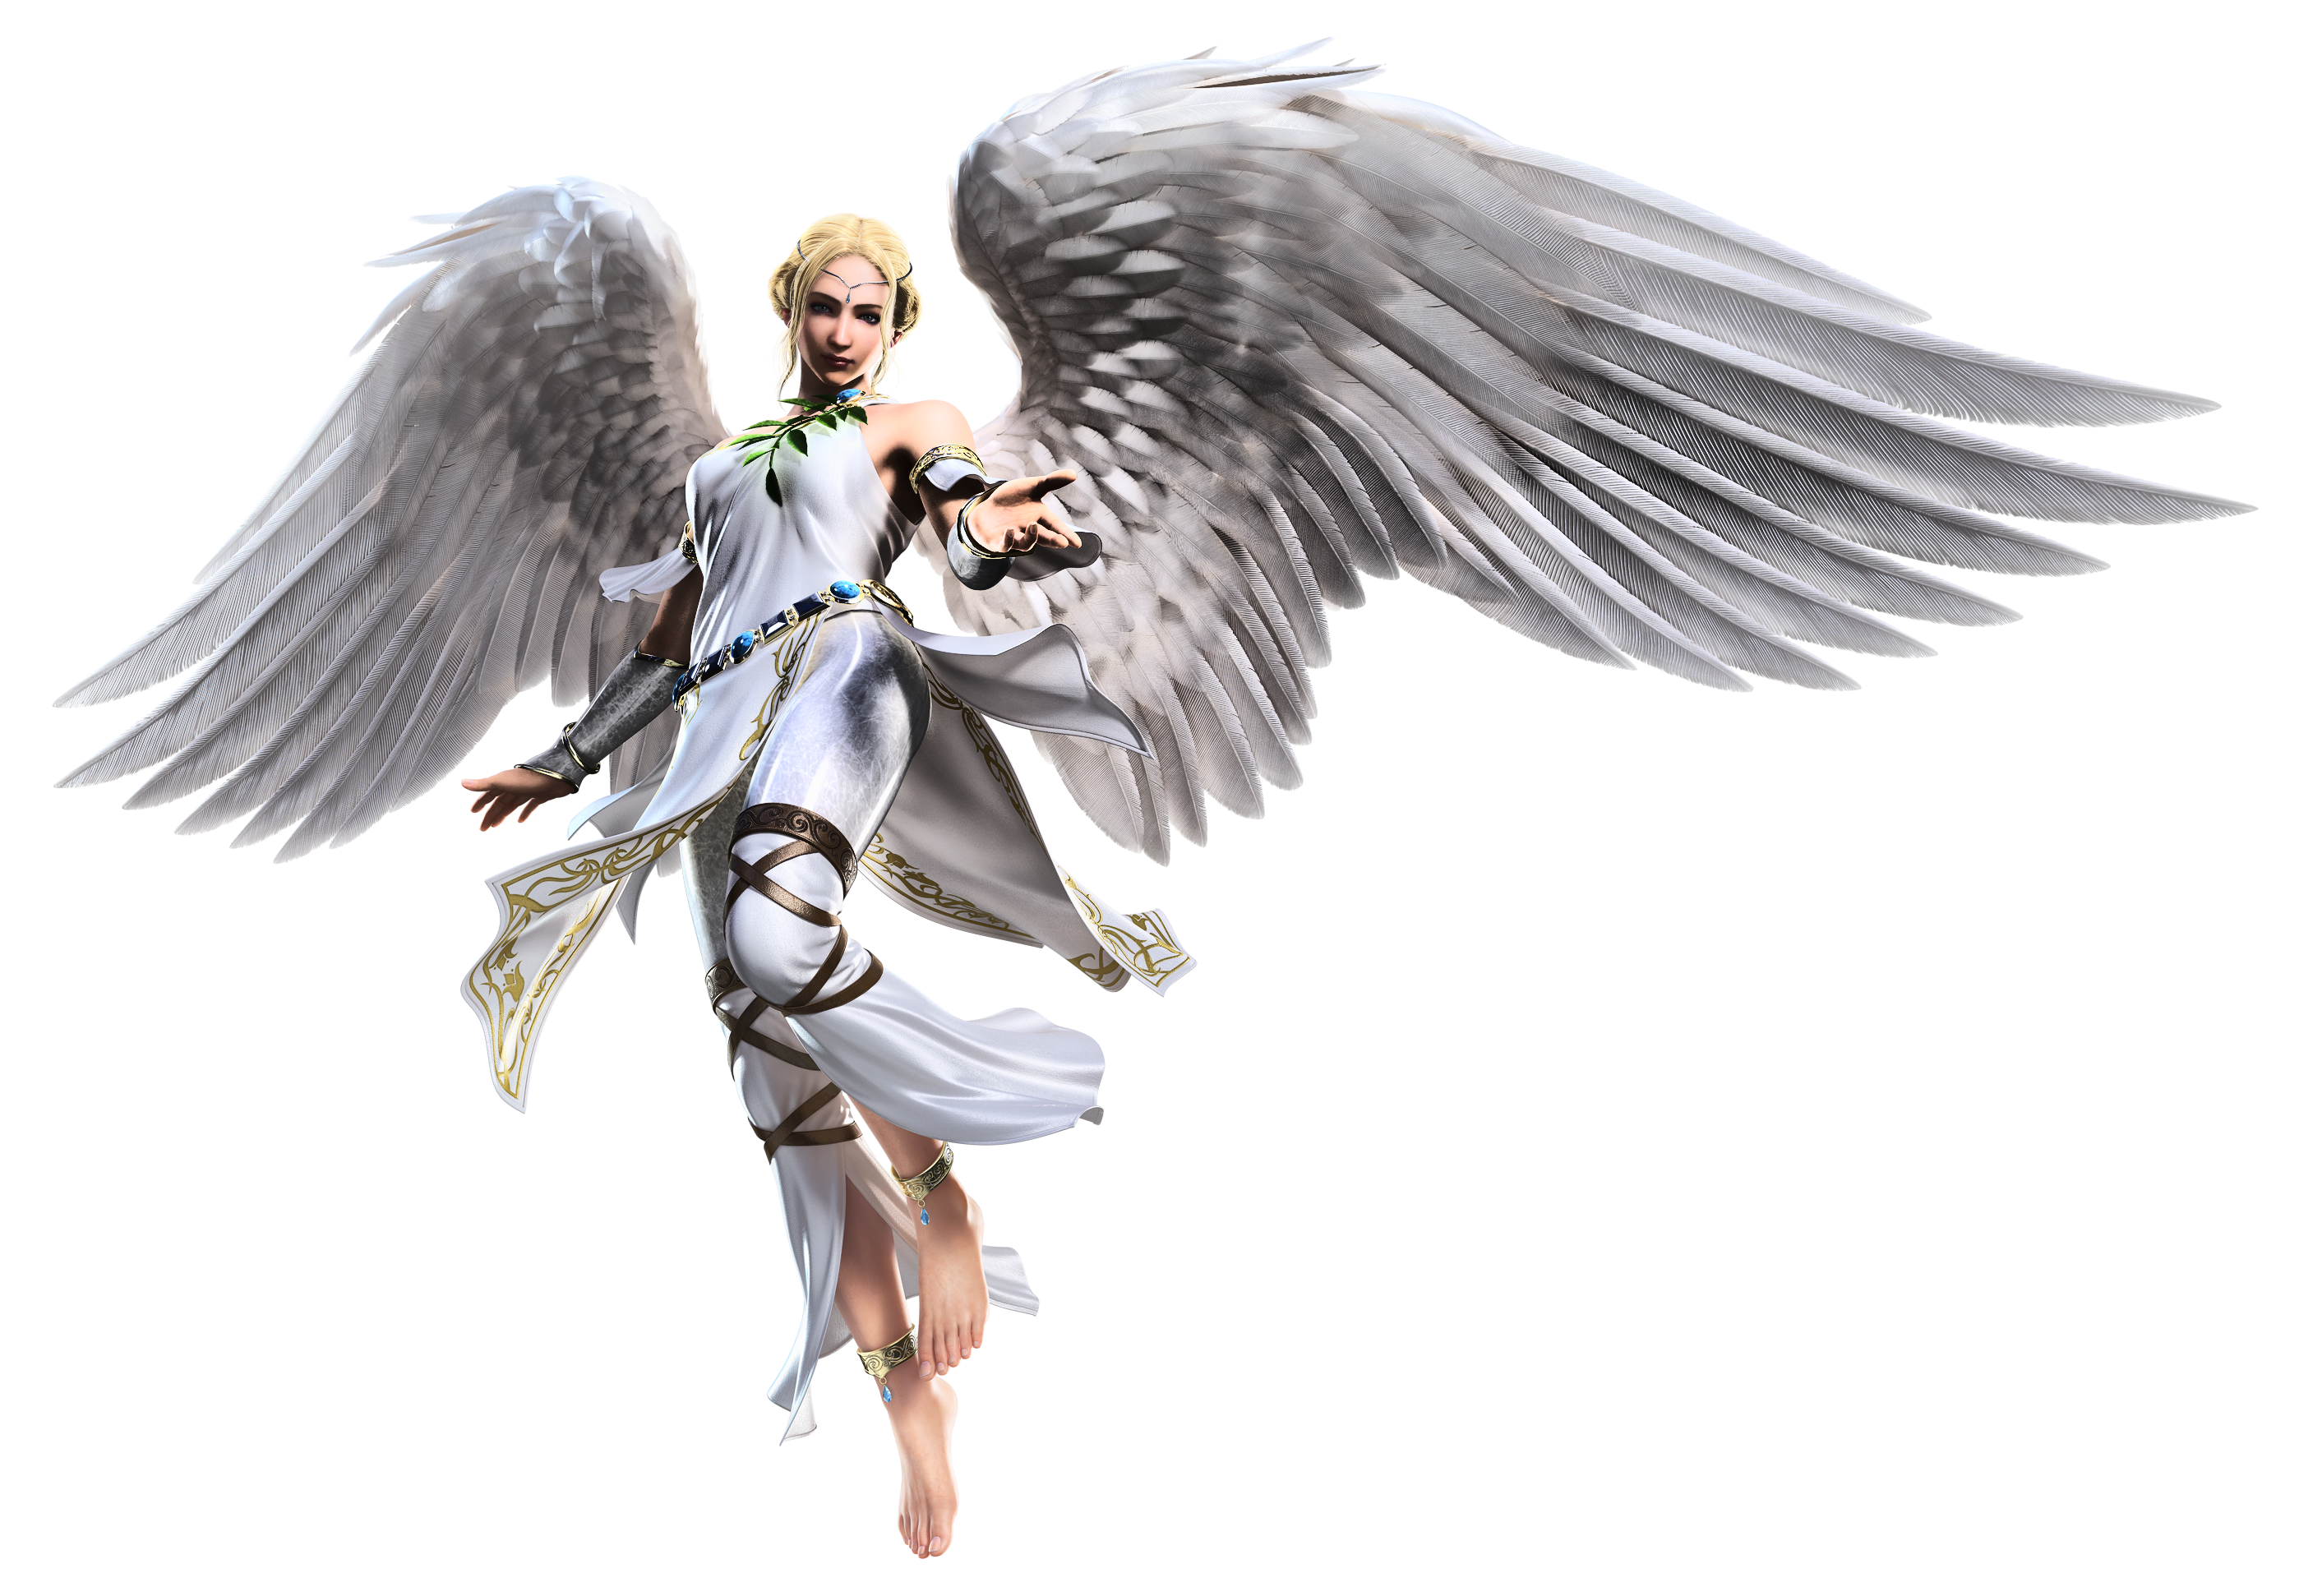 Png angels clear background. Angel image purepng free